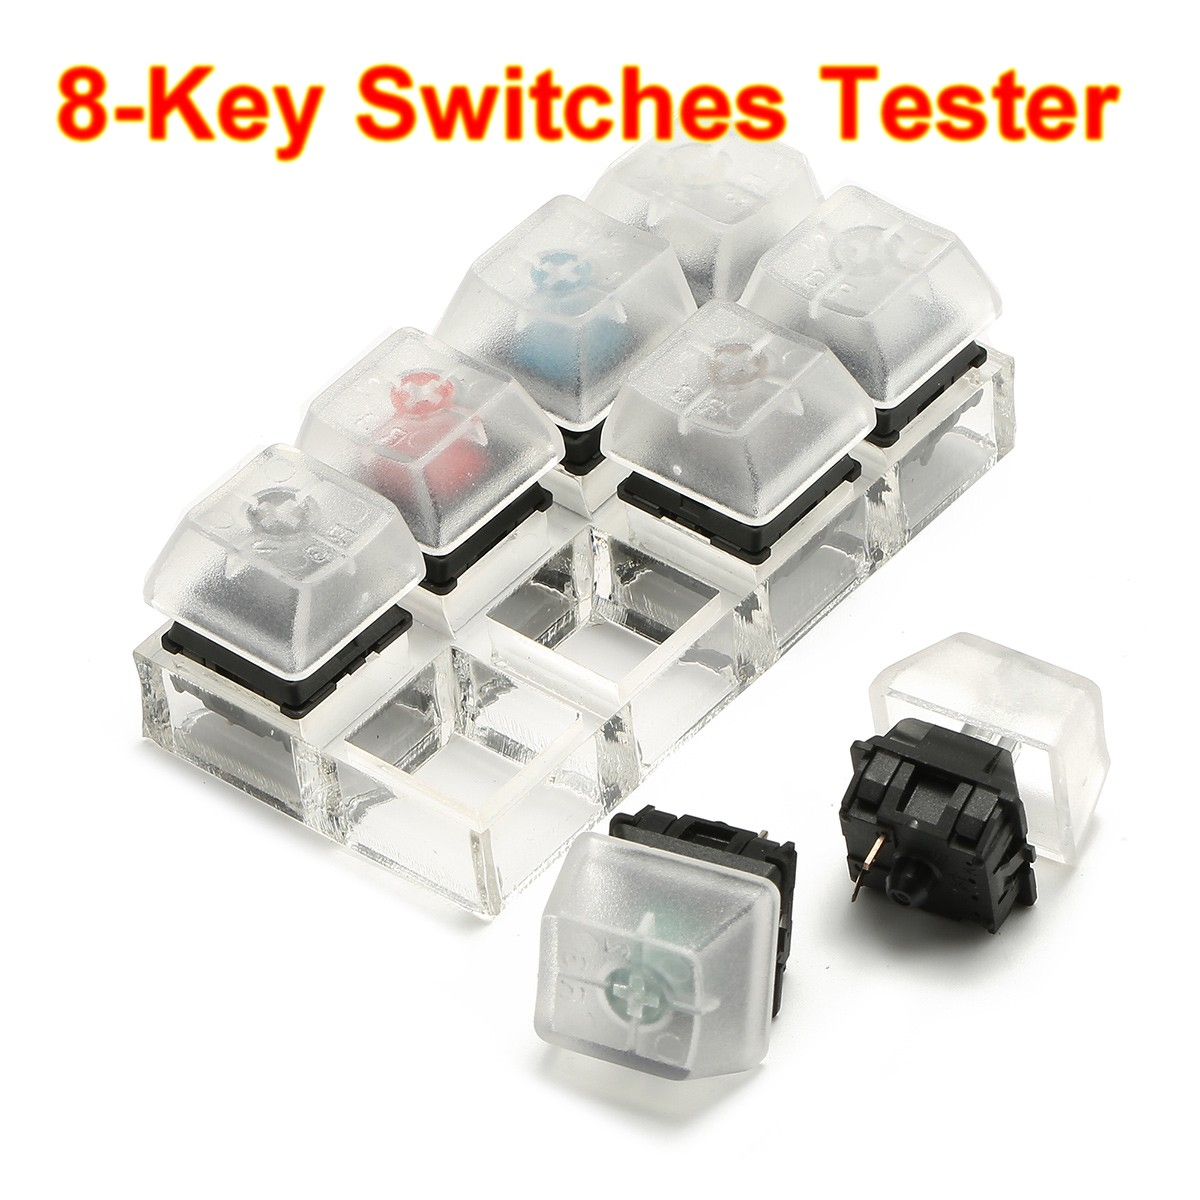 8 Key Mechanical Keyboards Switch Tester Kit Keycaps Switches Sampler For Cherry MX